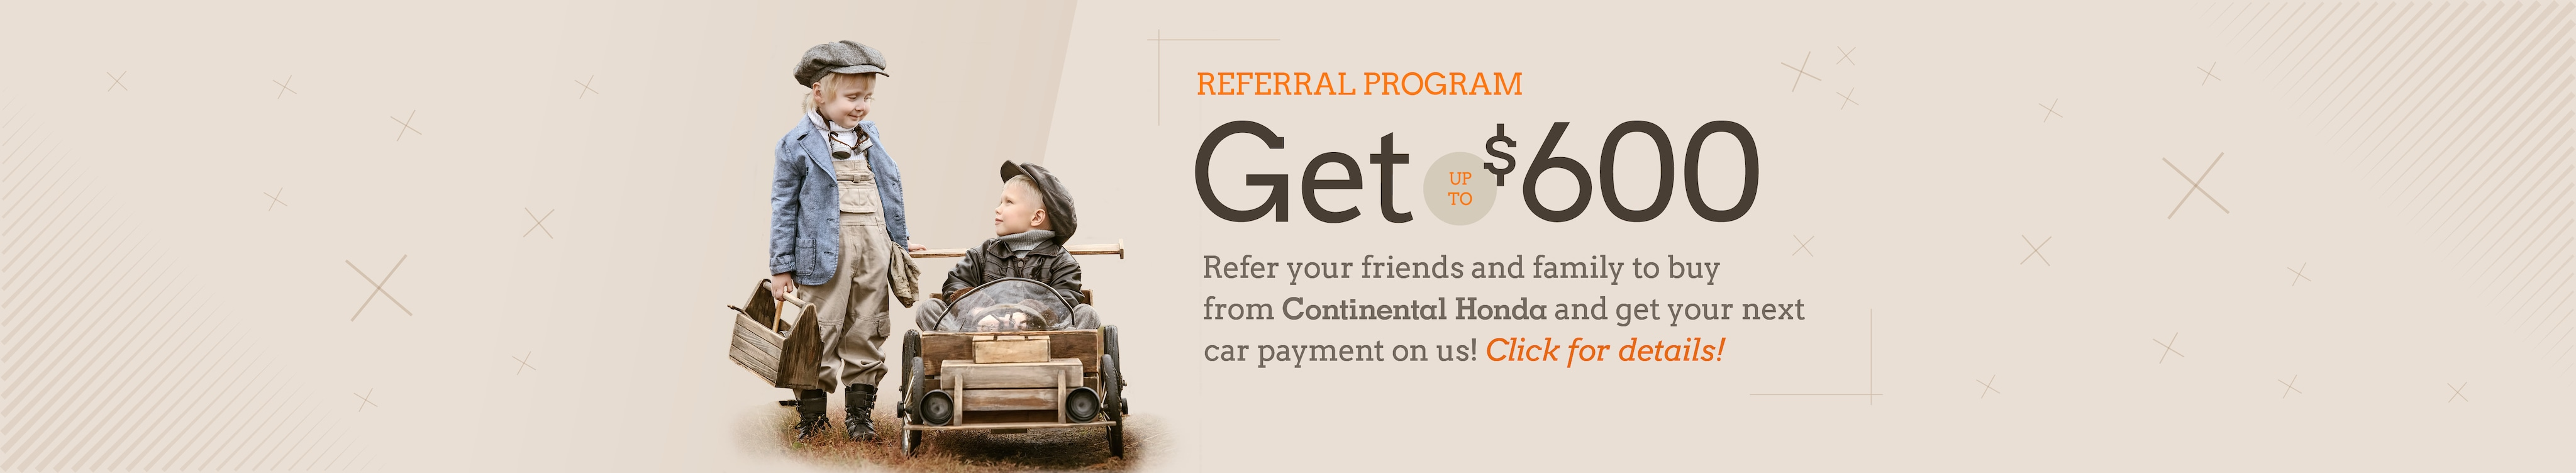 Continental Honda | New Honda Dealership in Anchorage, AK